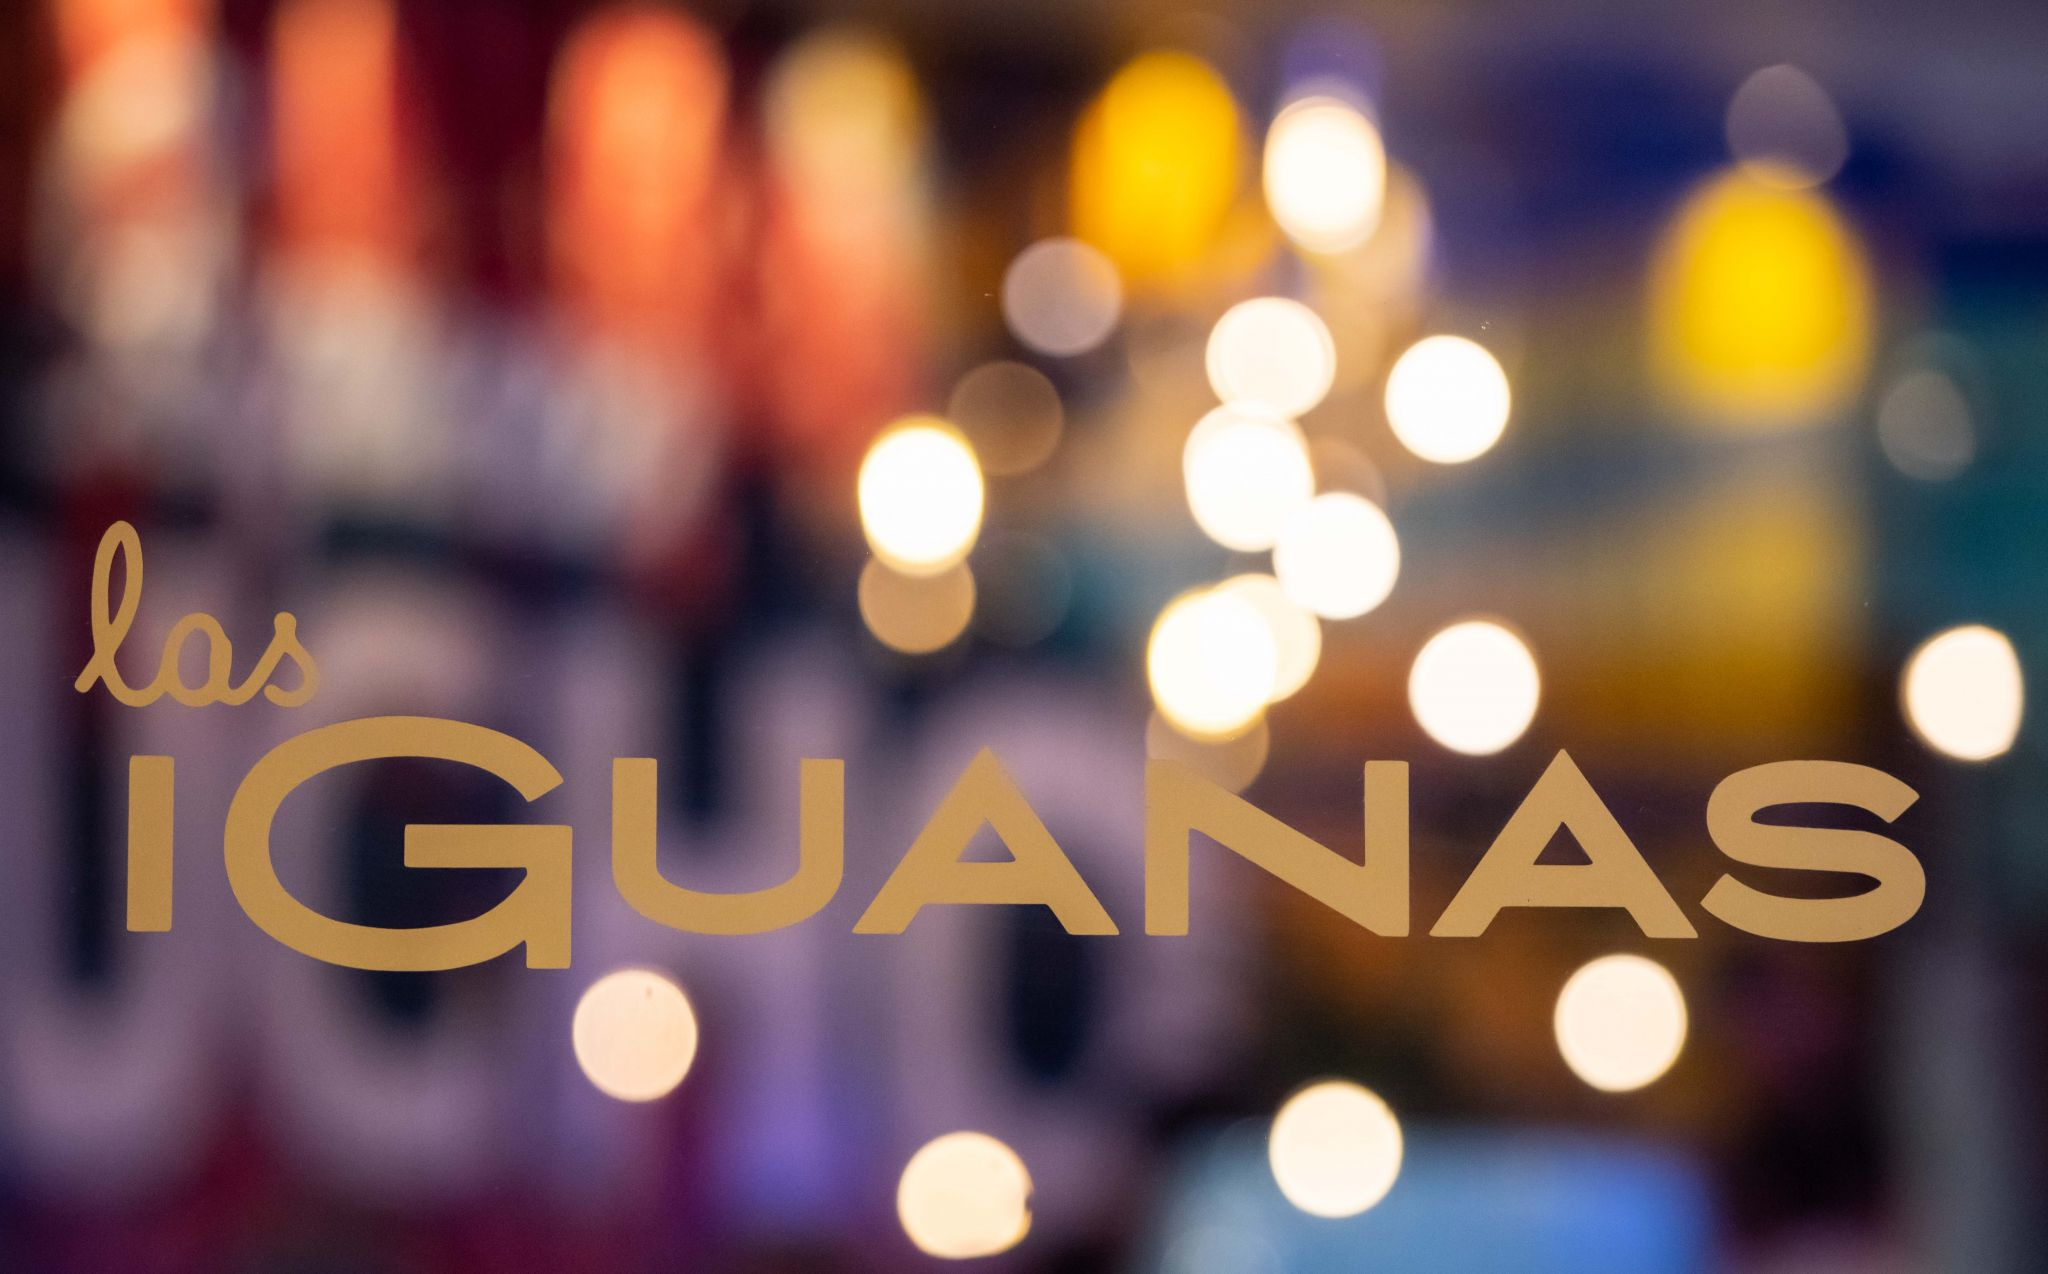 las iguanas liverpool one